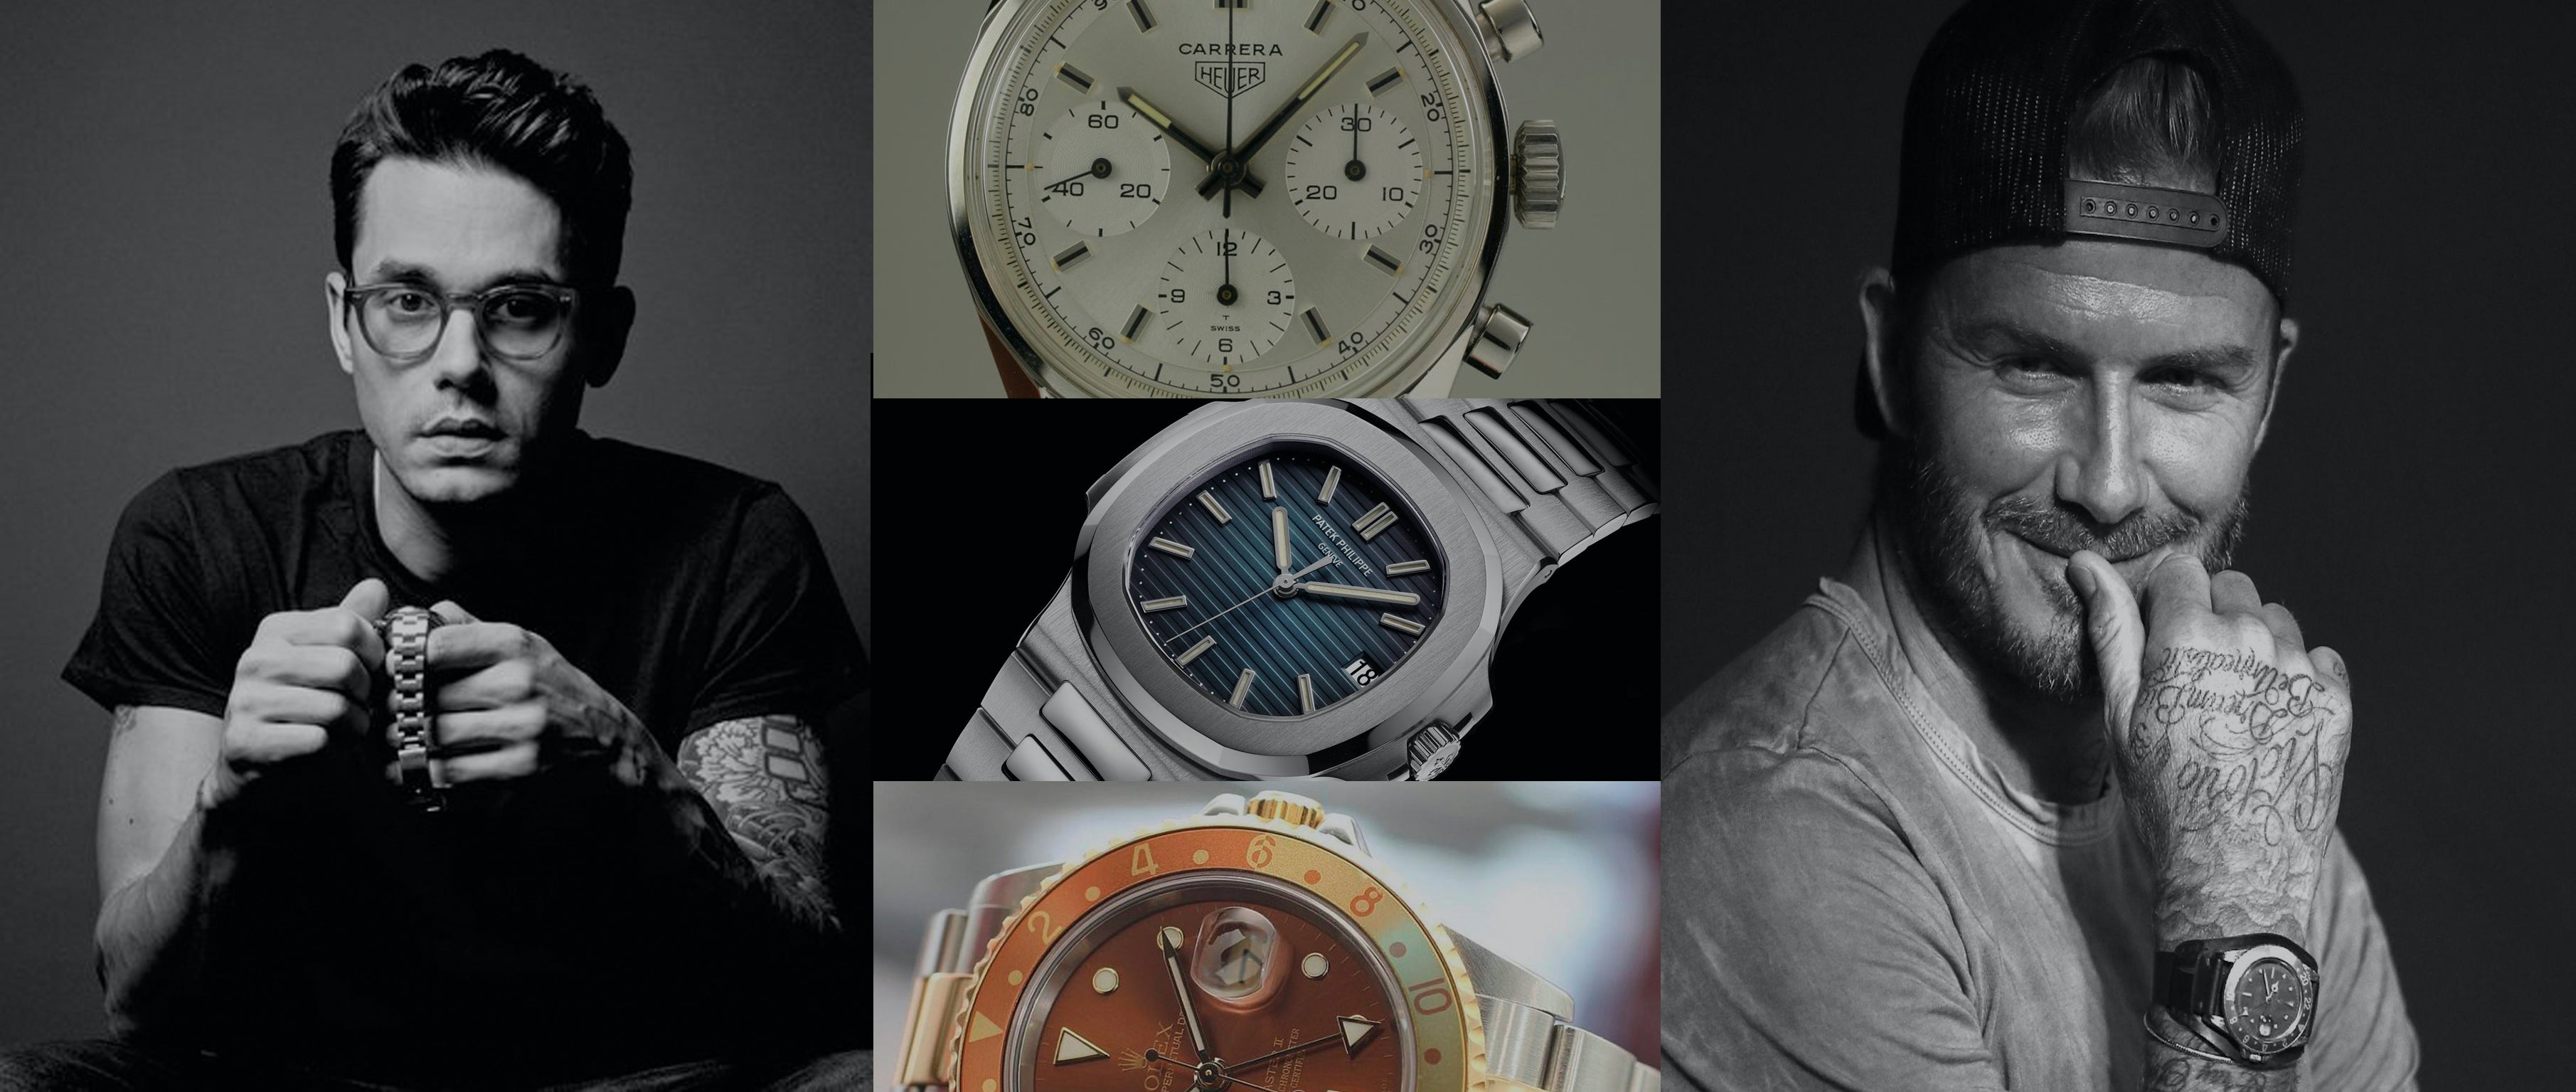 Celebrities and their vintage watch collections who has the best taste ashton blakey for Celebrity sextortion watch